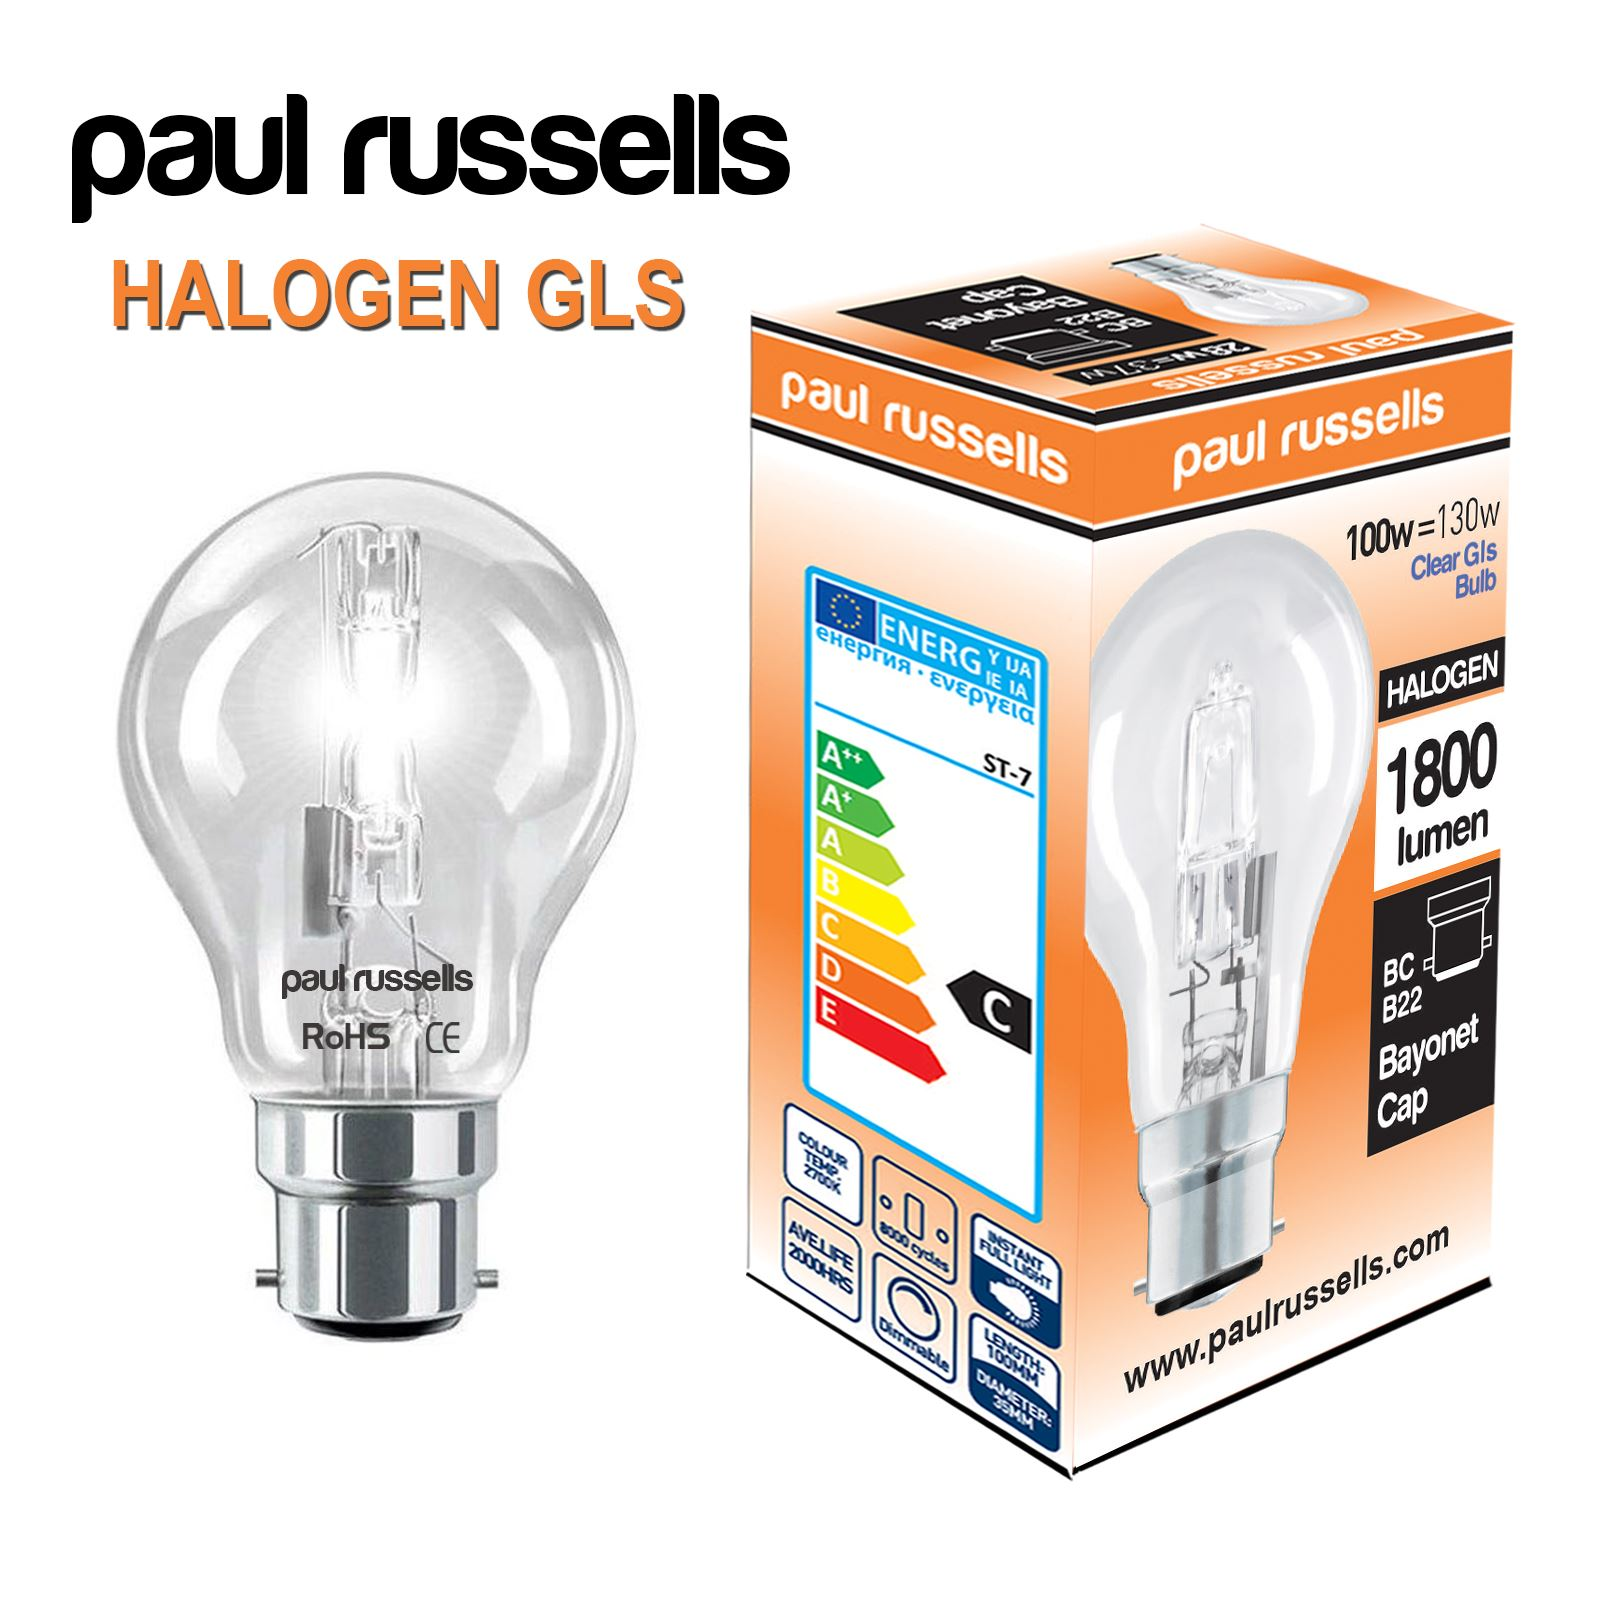 Halogen E14 Halogen Energy Saving Dimmable Gls Light Candle Bulb Golf